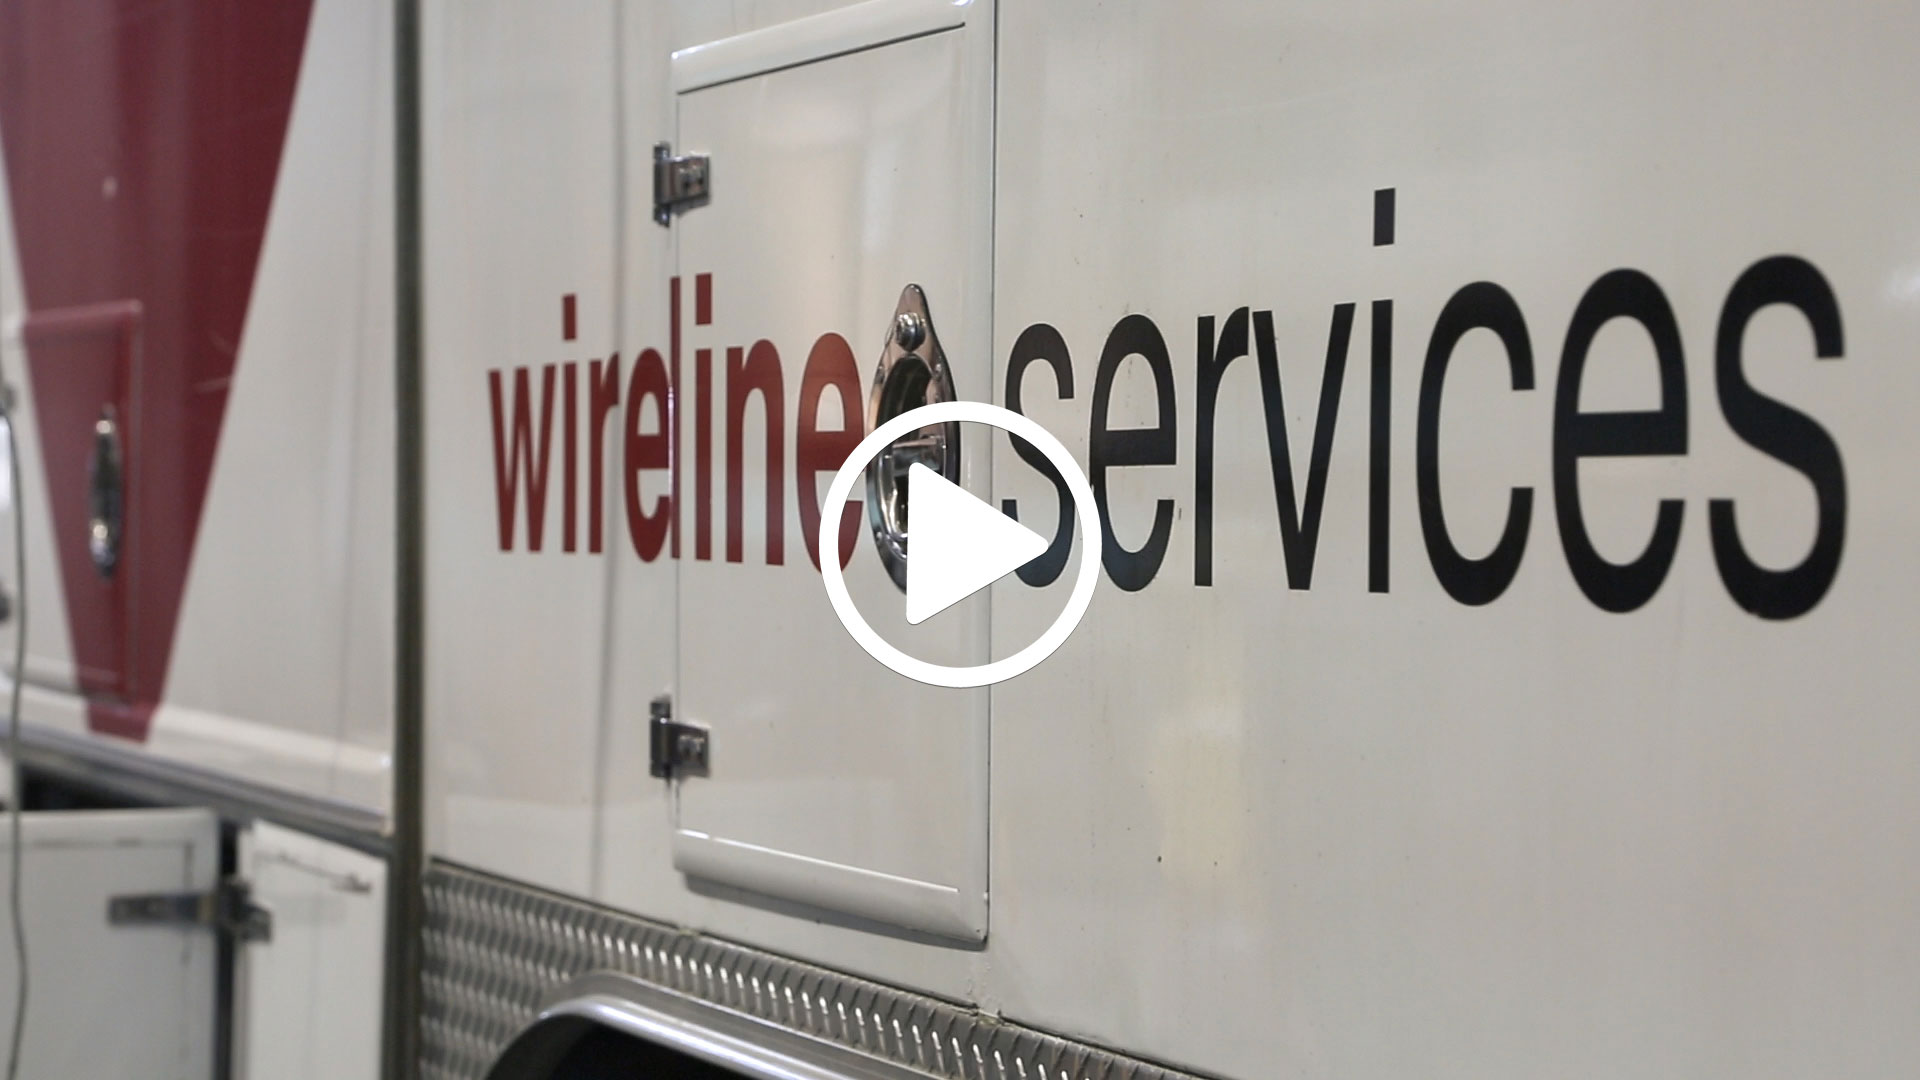 Watch our careers video for available job opening Wireline Field Operator Cased Hole in Oklahoma City, OK